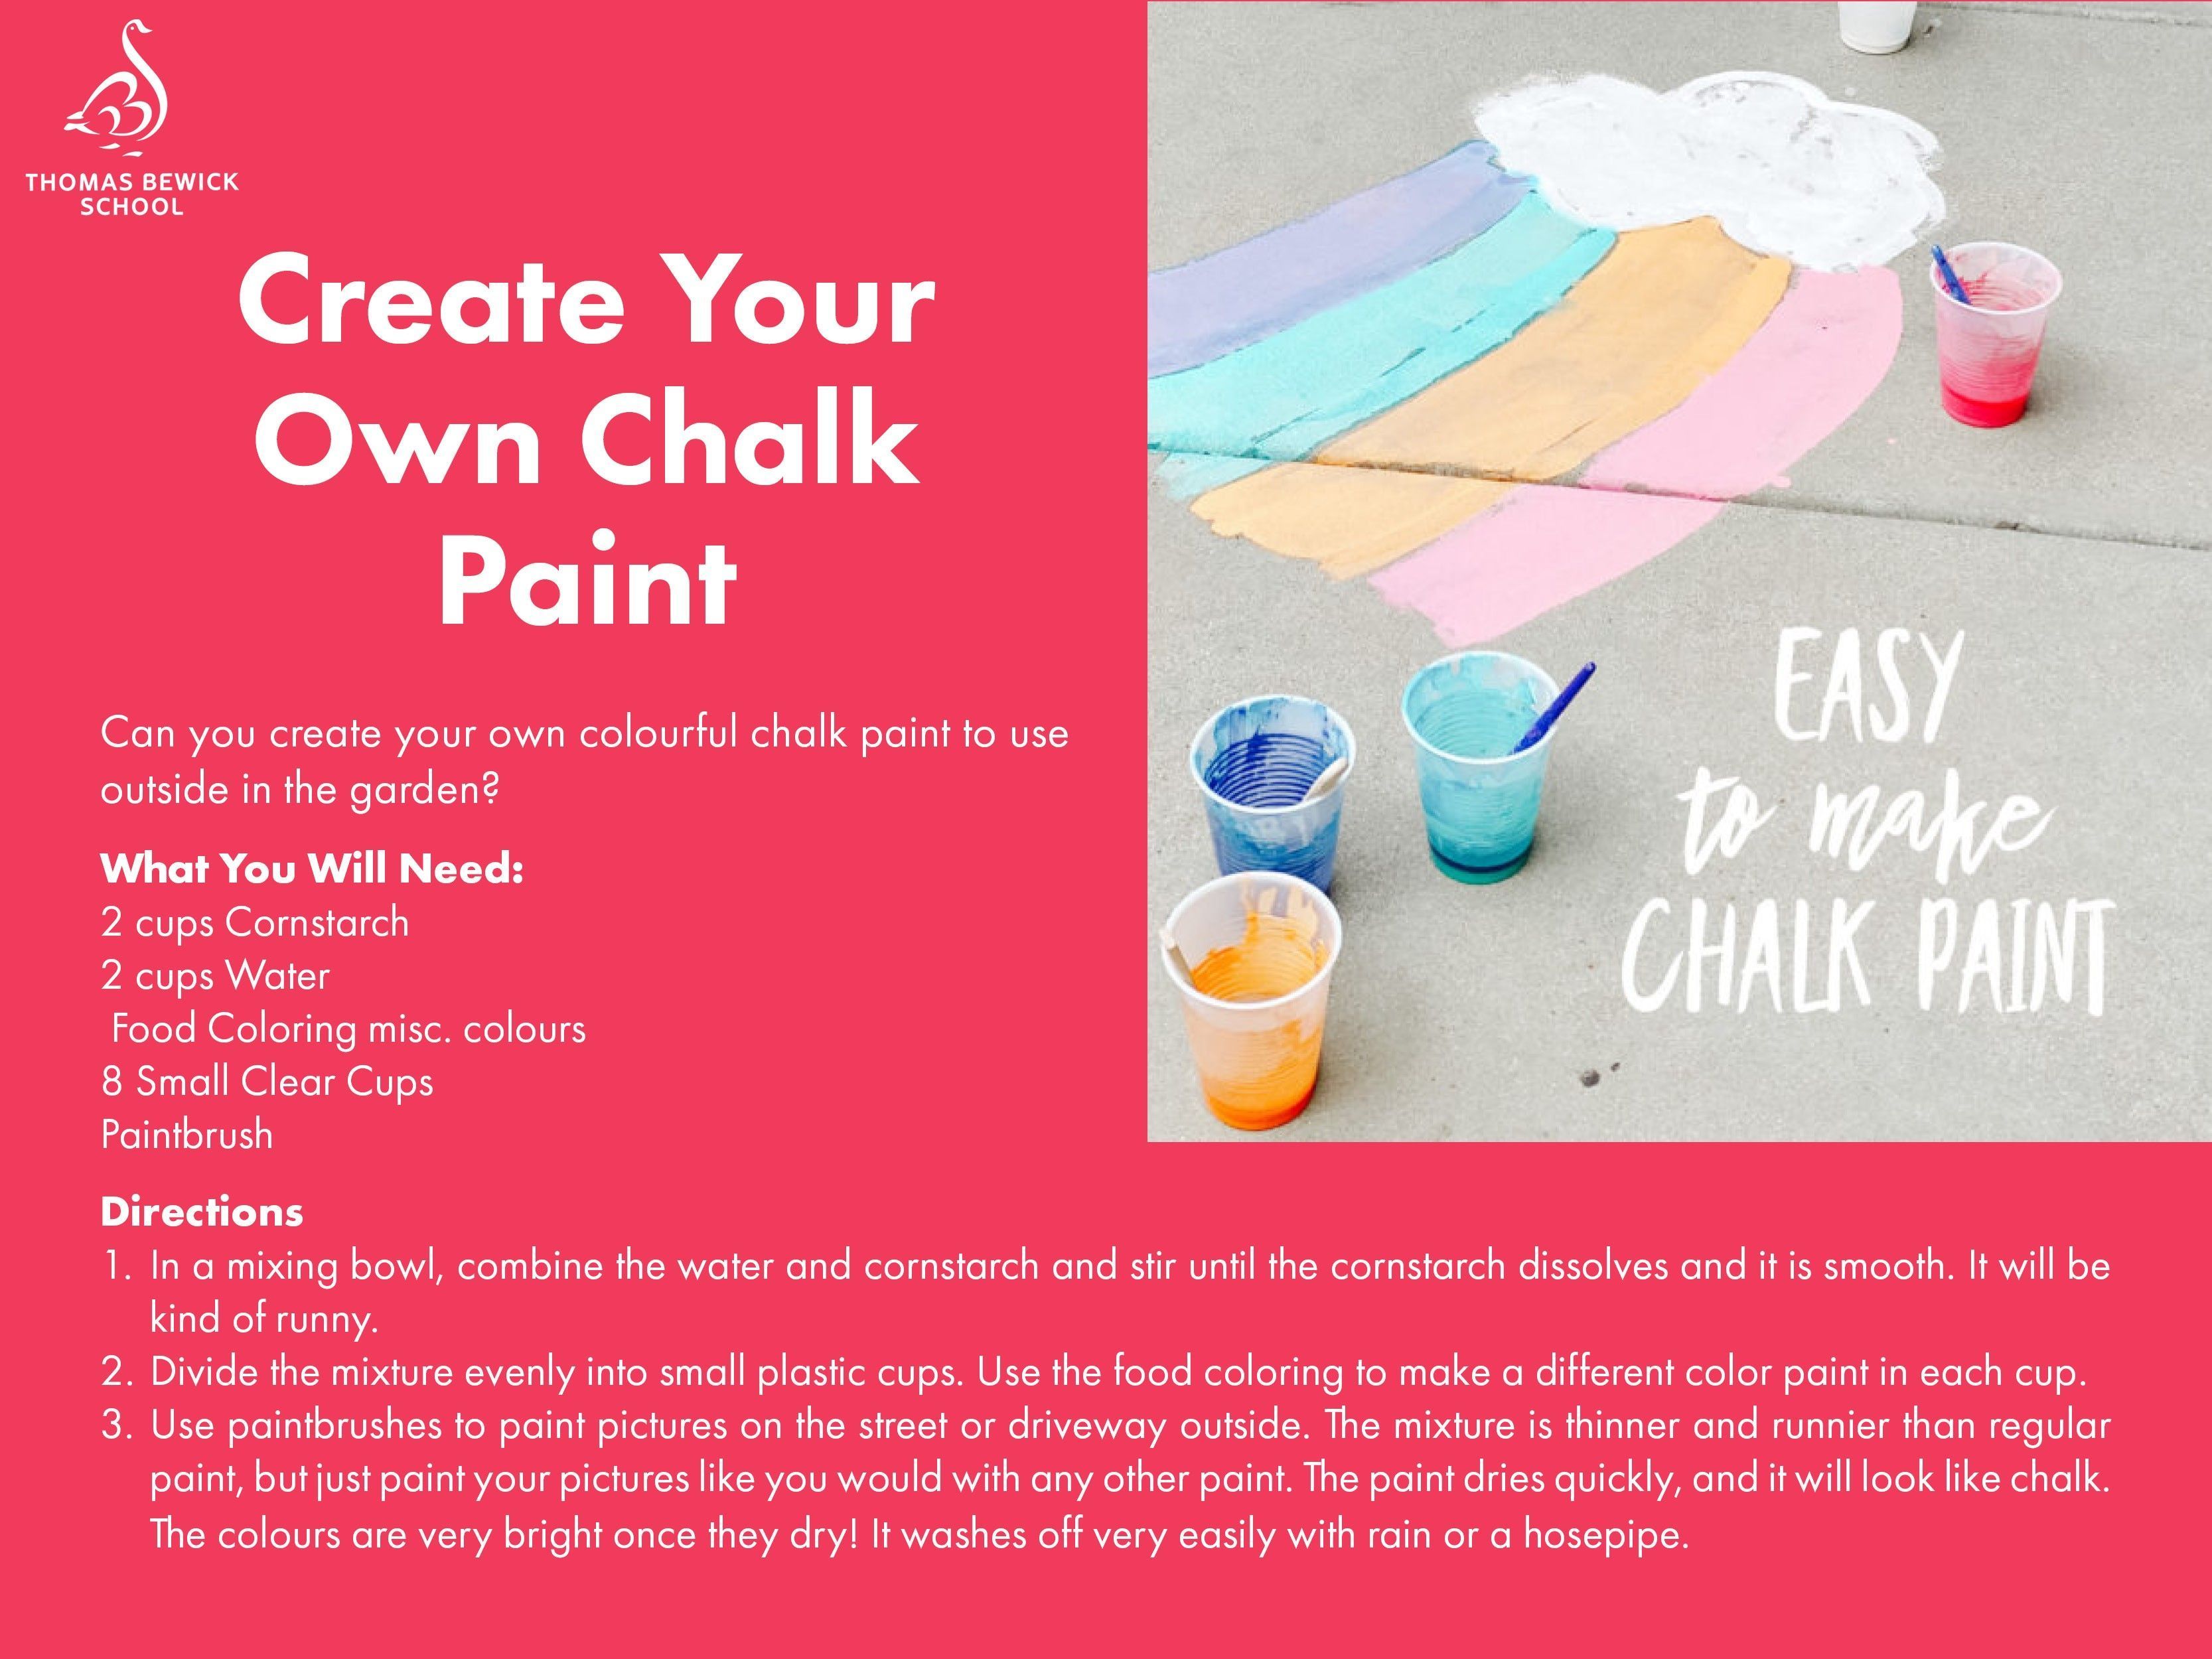 Create Your Own Chalk Paint